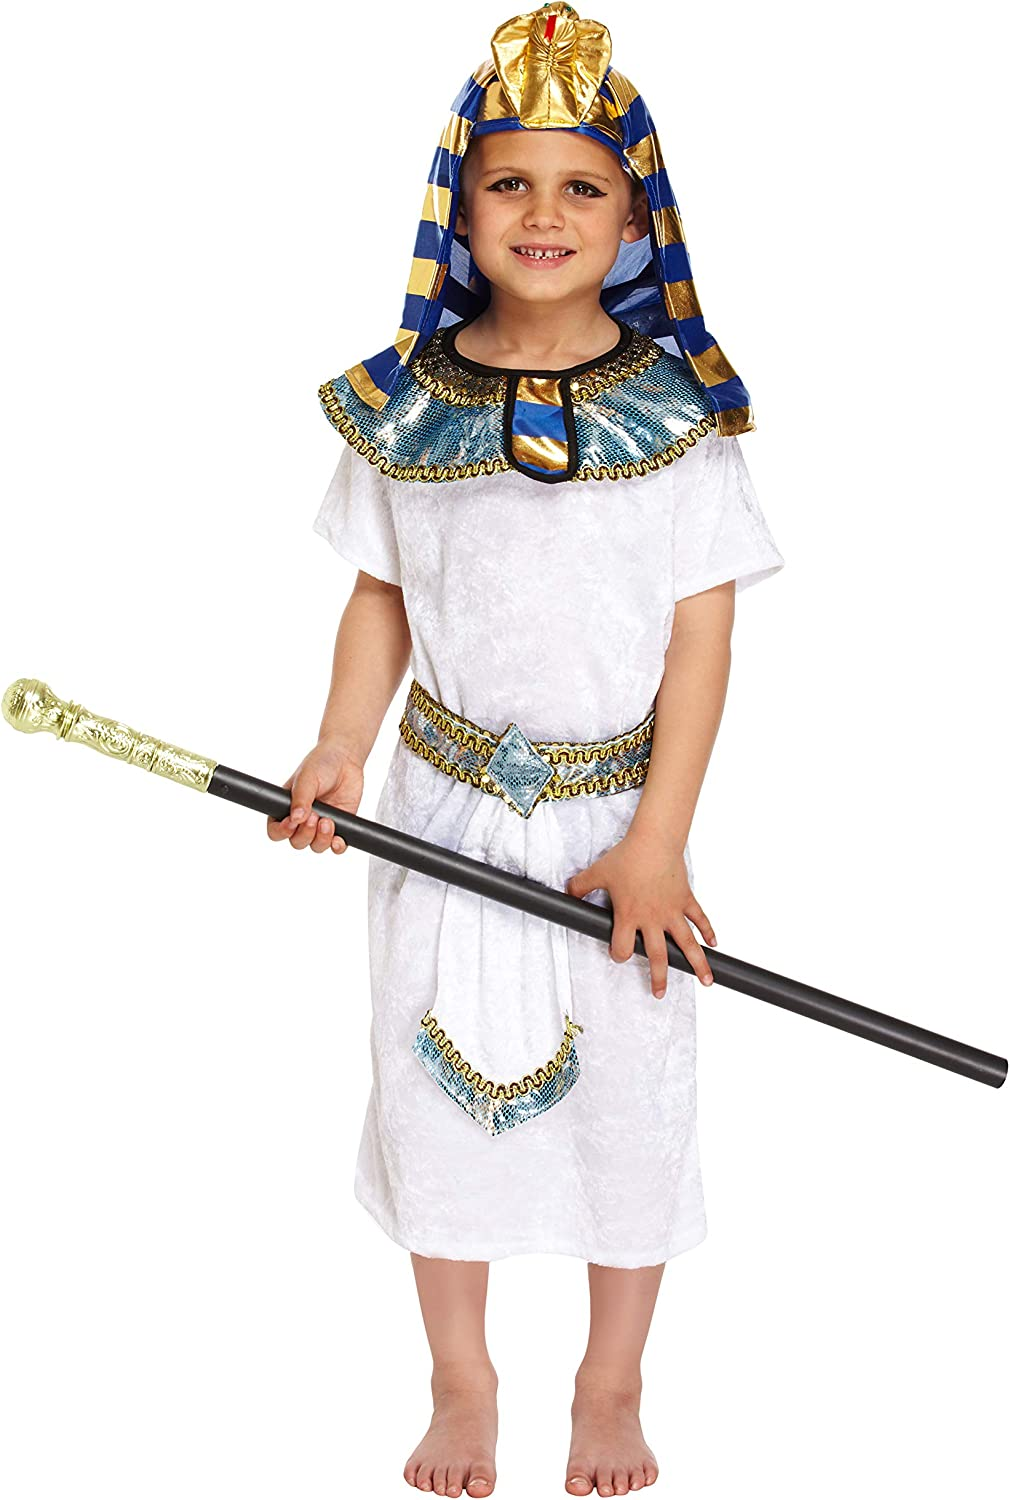 EGYPTIAN PHARAOH FANCYDRESS COSTUME OUTFIT PRINCE KING MED 7-9YRS ...